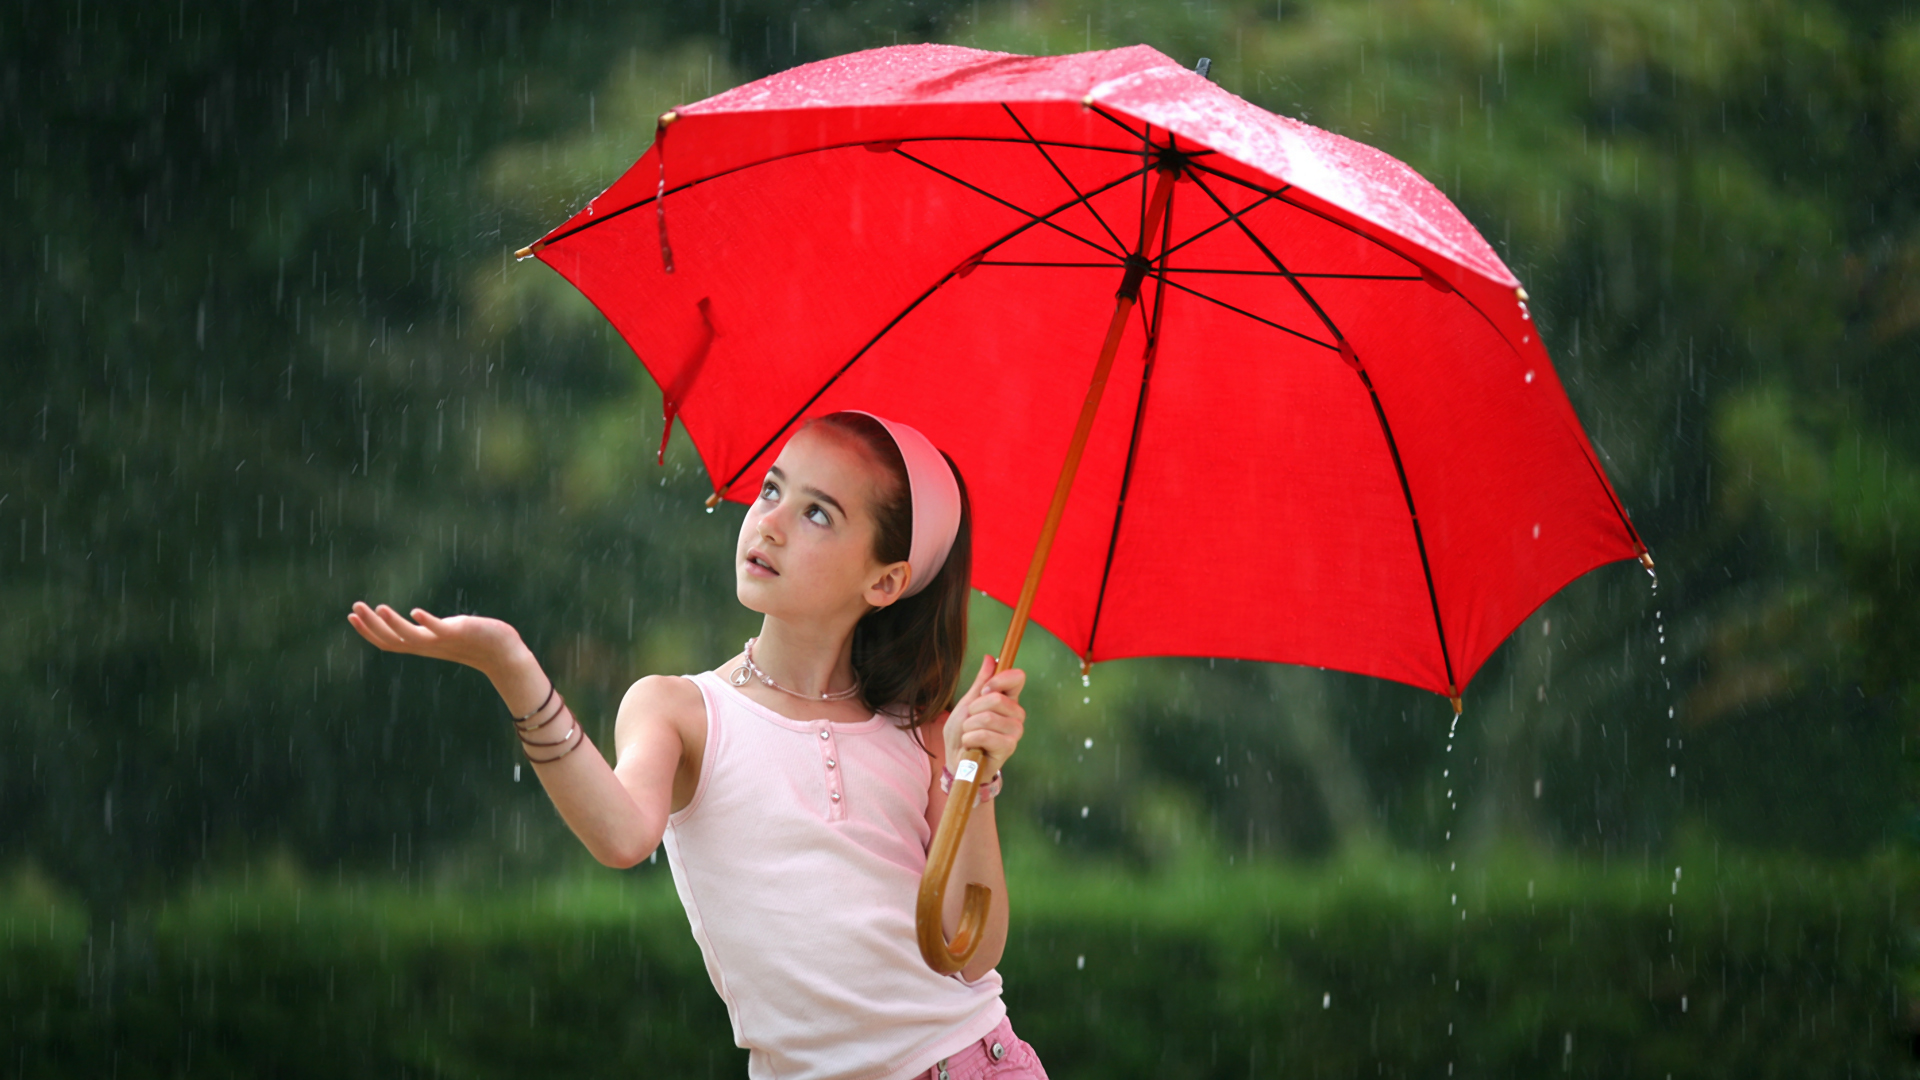 She sold her marshmallow to buy an umbrella for a rainy day